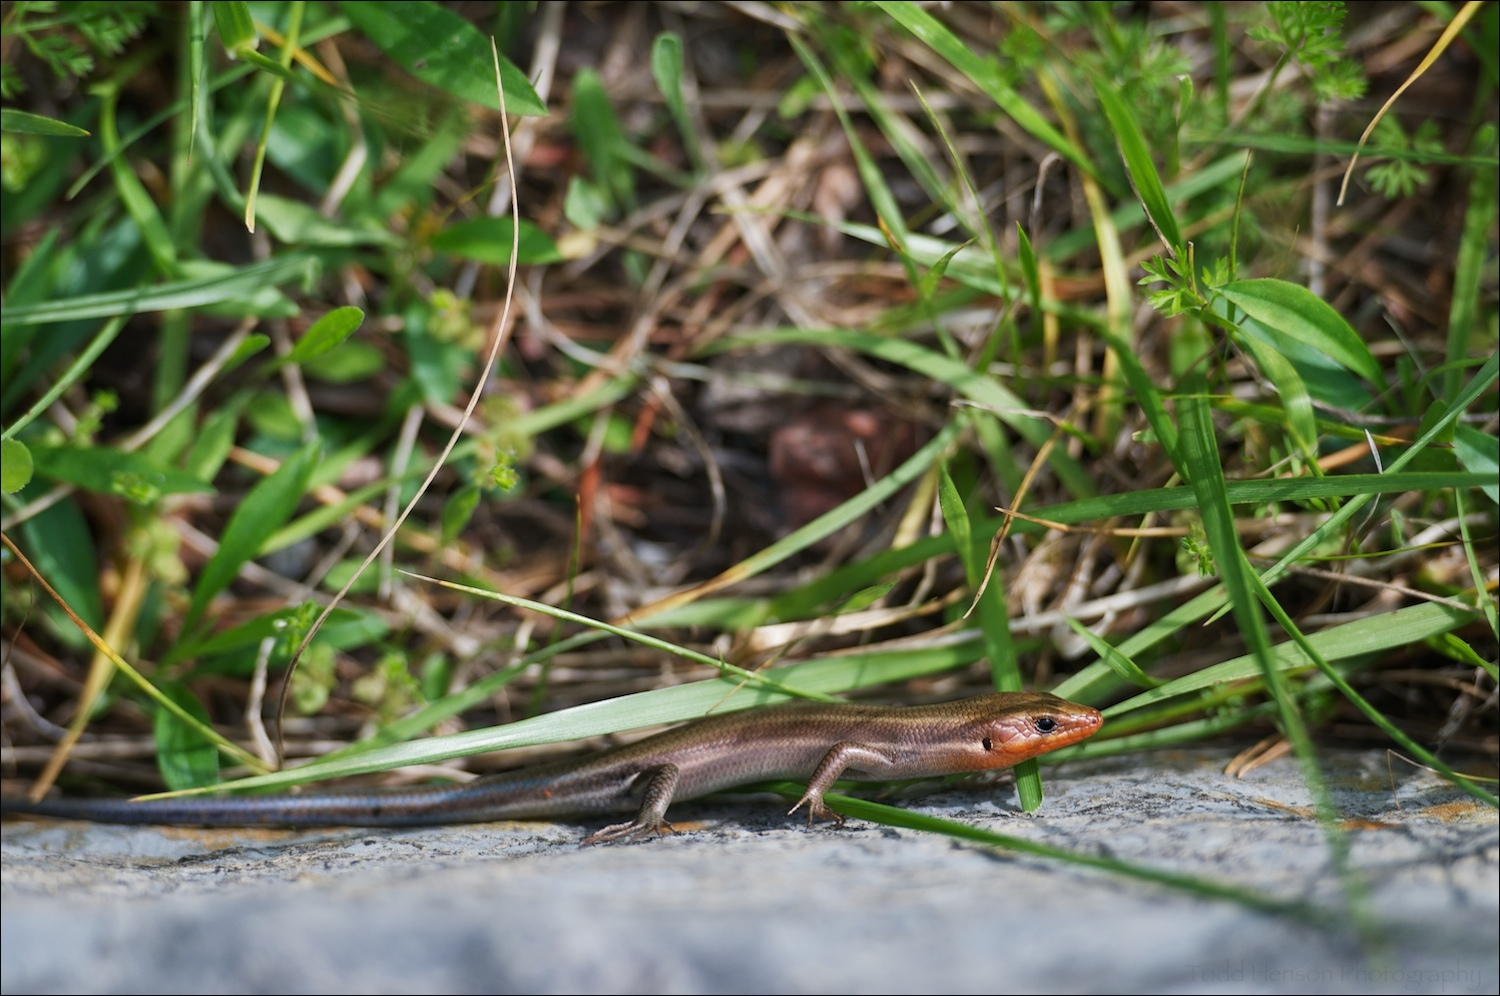 Common Five-lined Skink